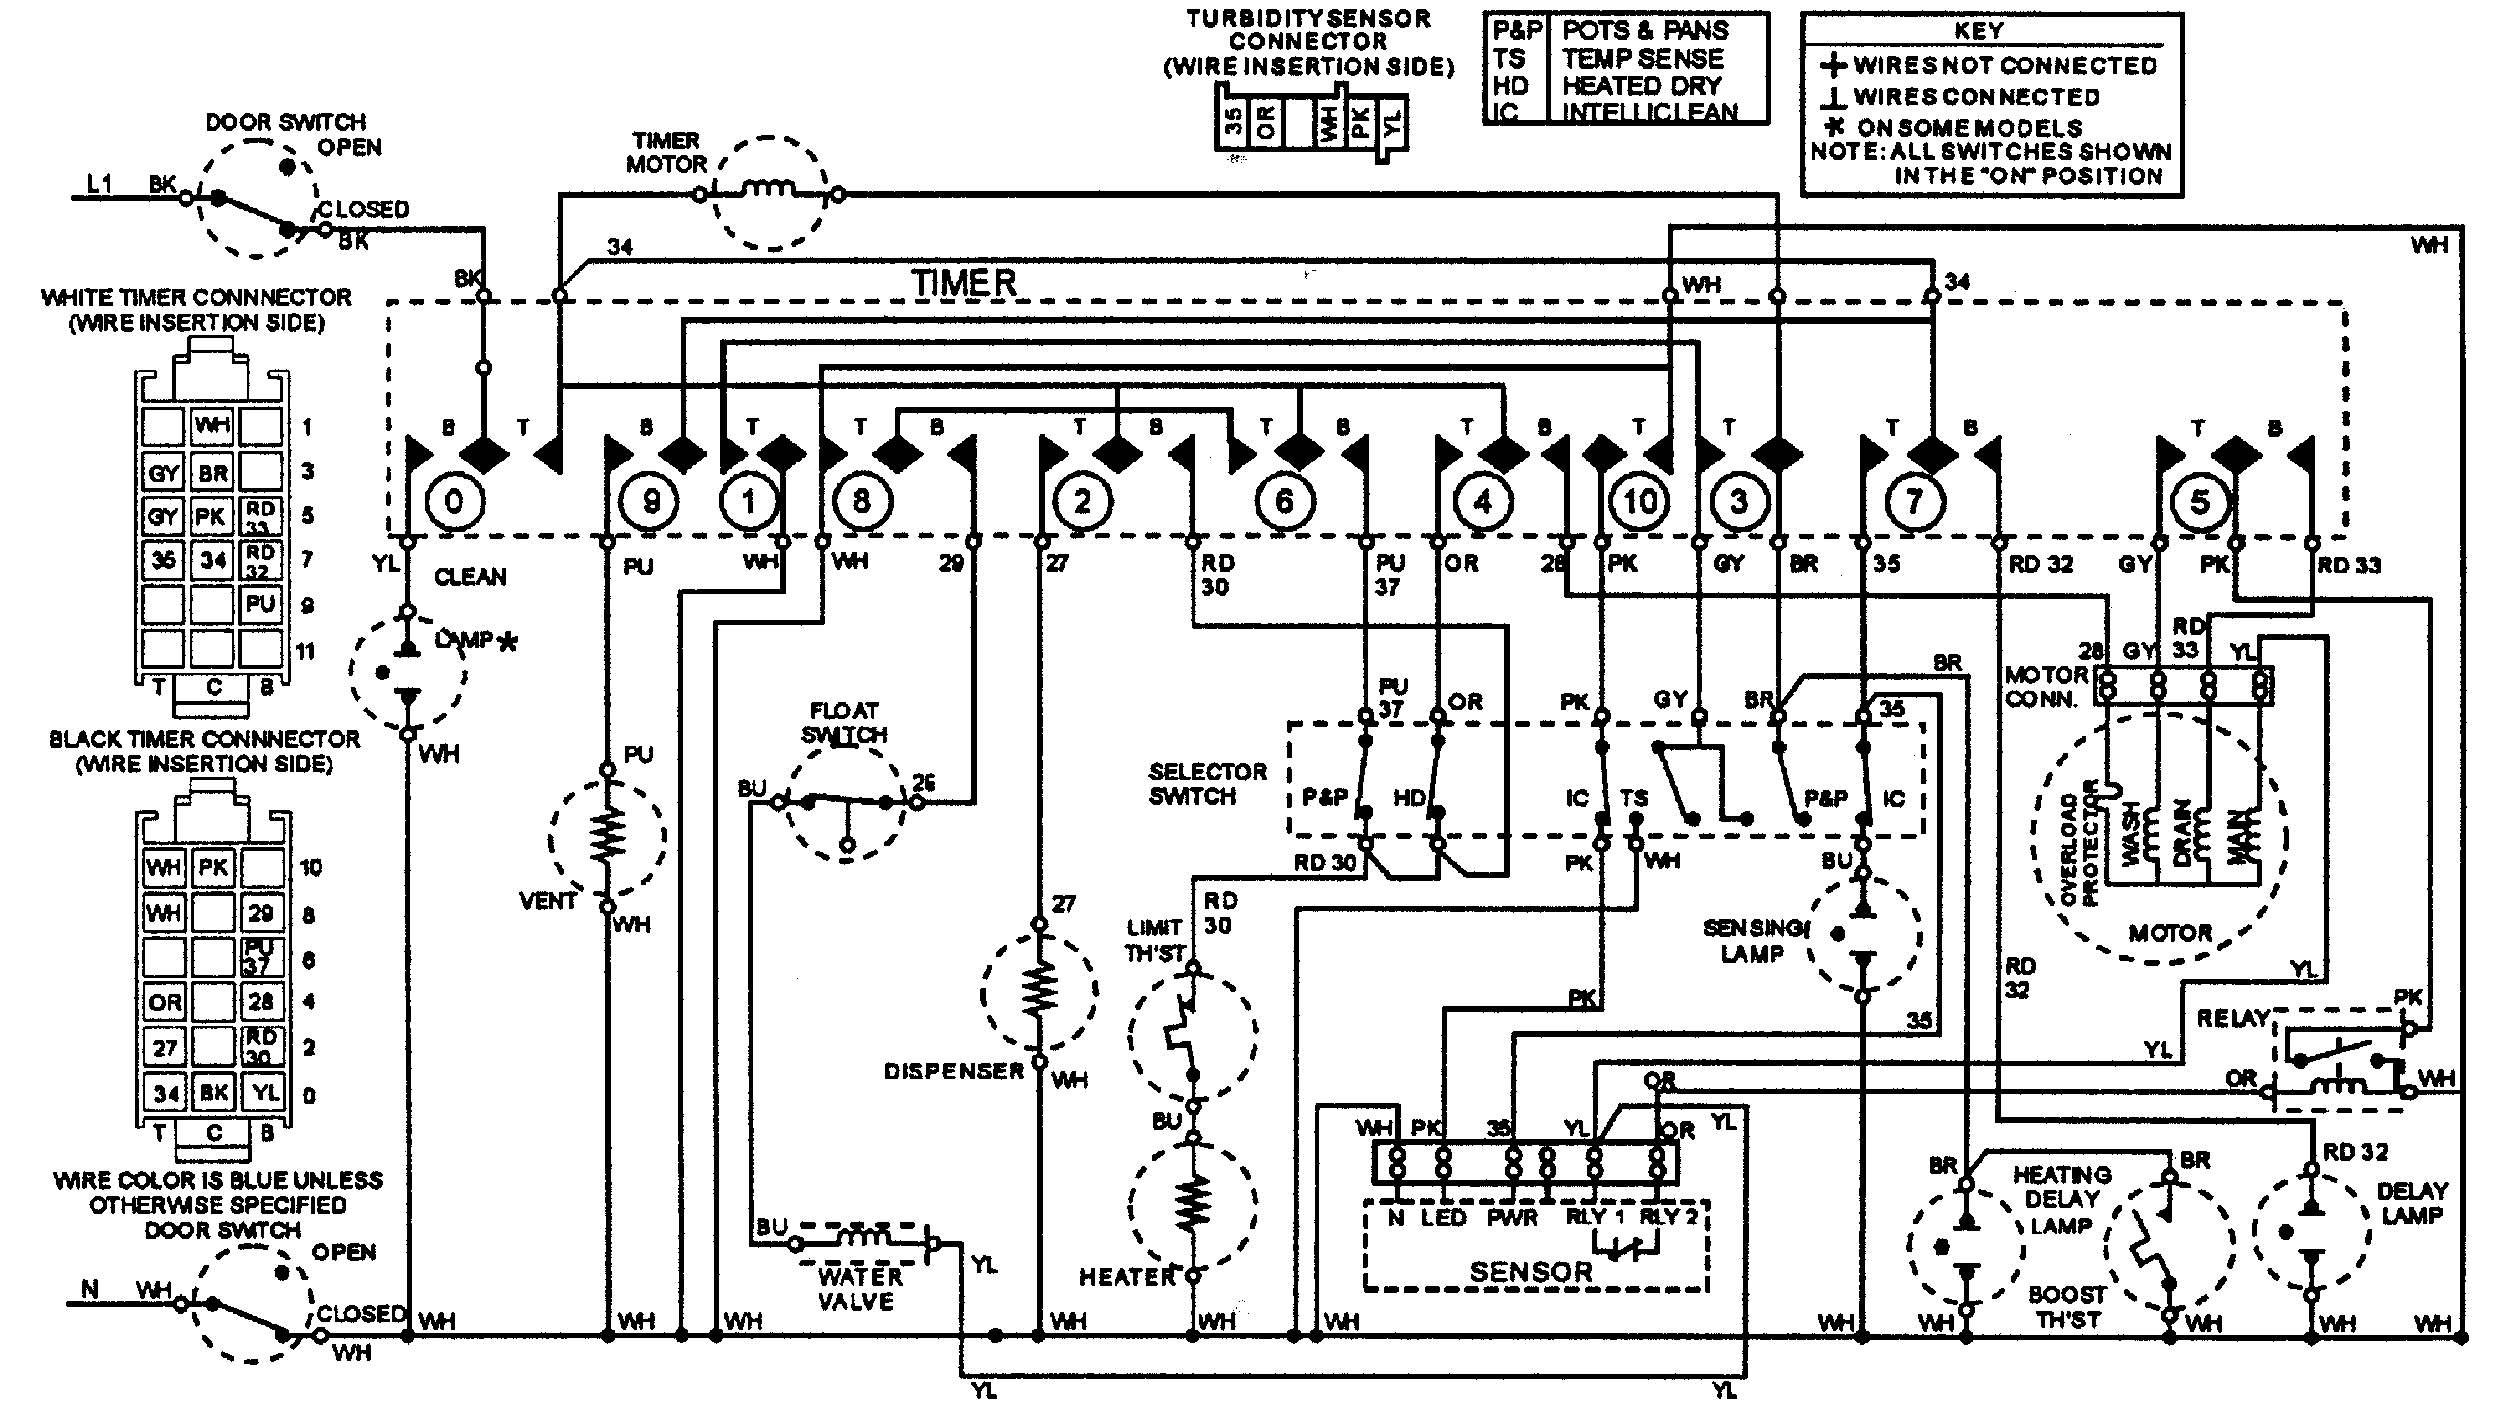 diagram] 4 wire motor wiring diagram dishwasher full version hd quality diagram  dishwasher - wdsairsuspension.lionsicilia.it  lionsicilia.it